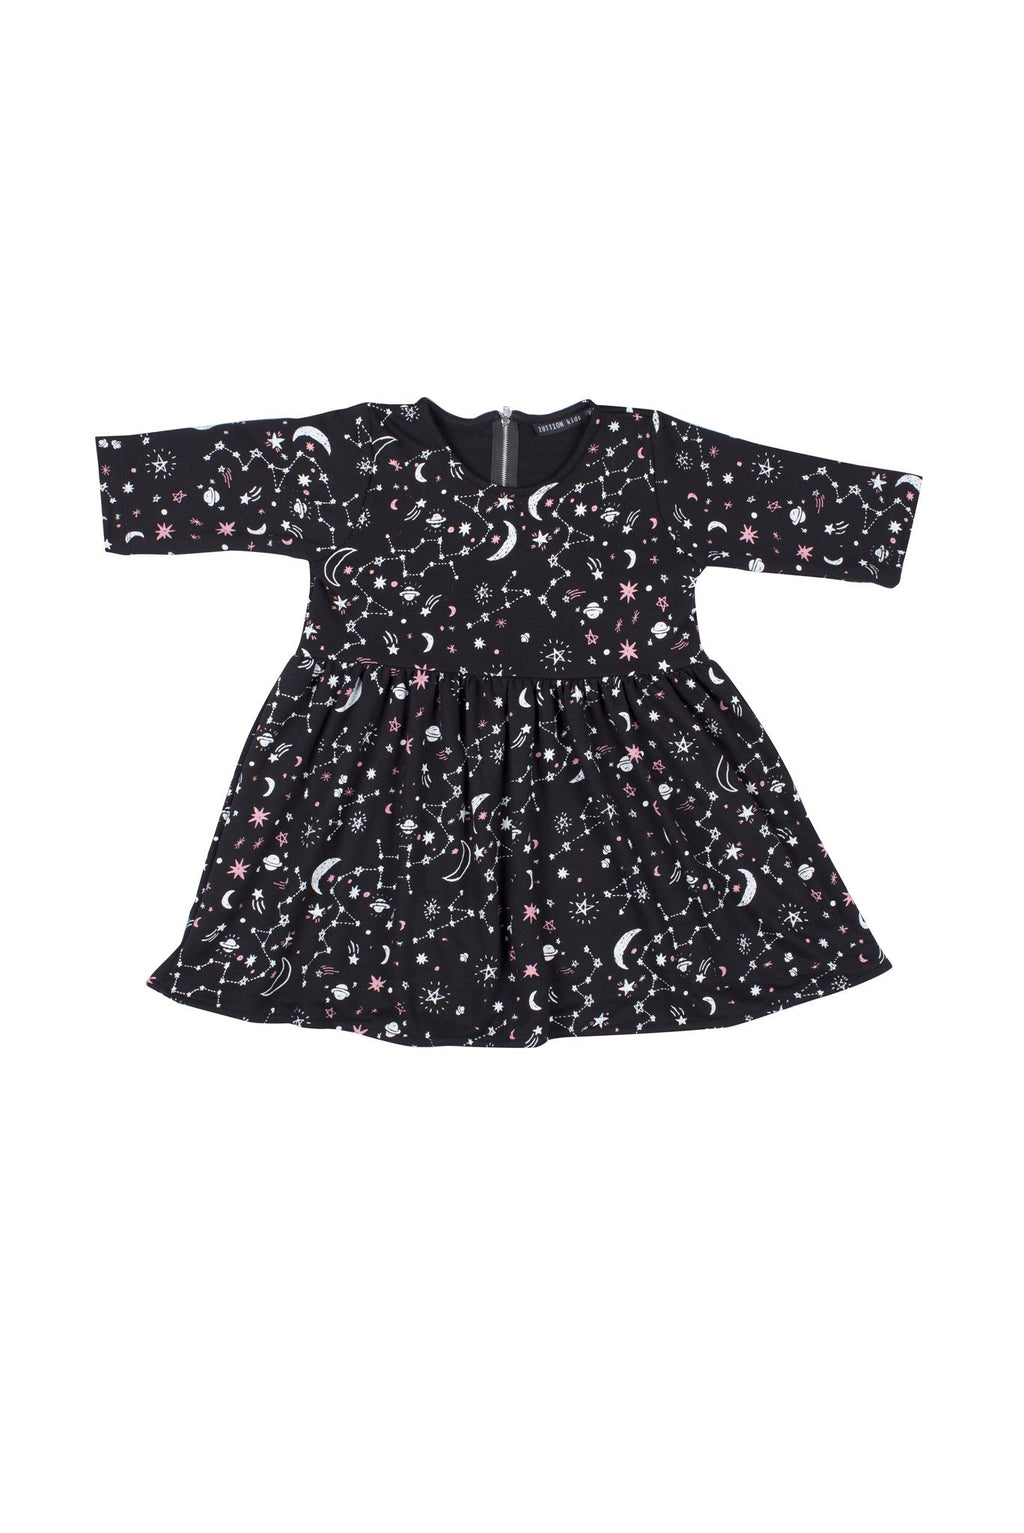 Penelope Galaxy Dress - Zuttion